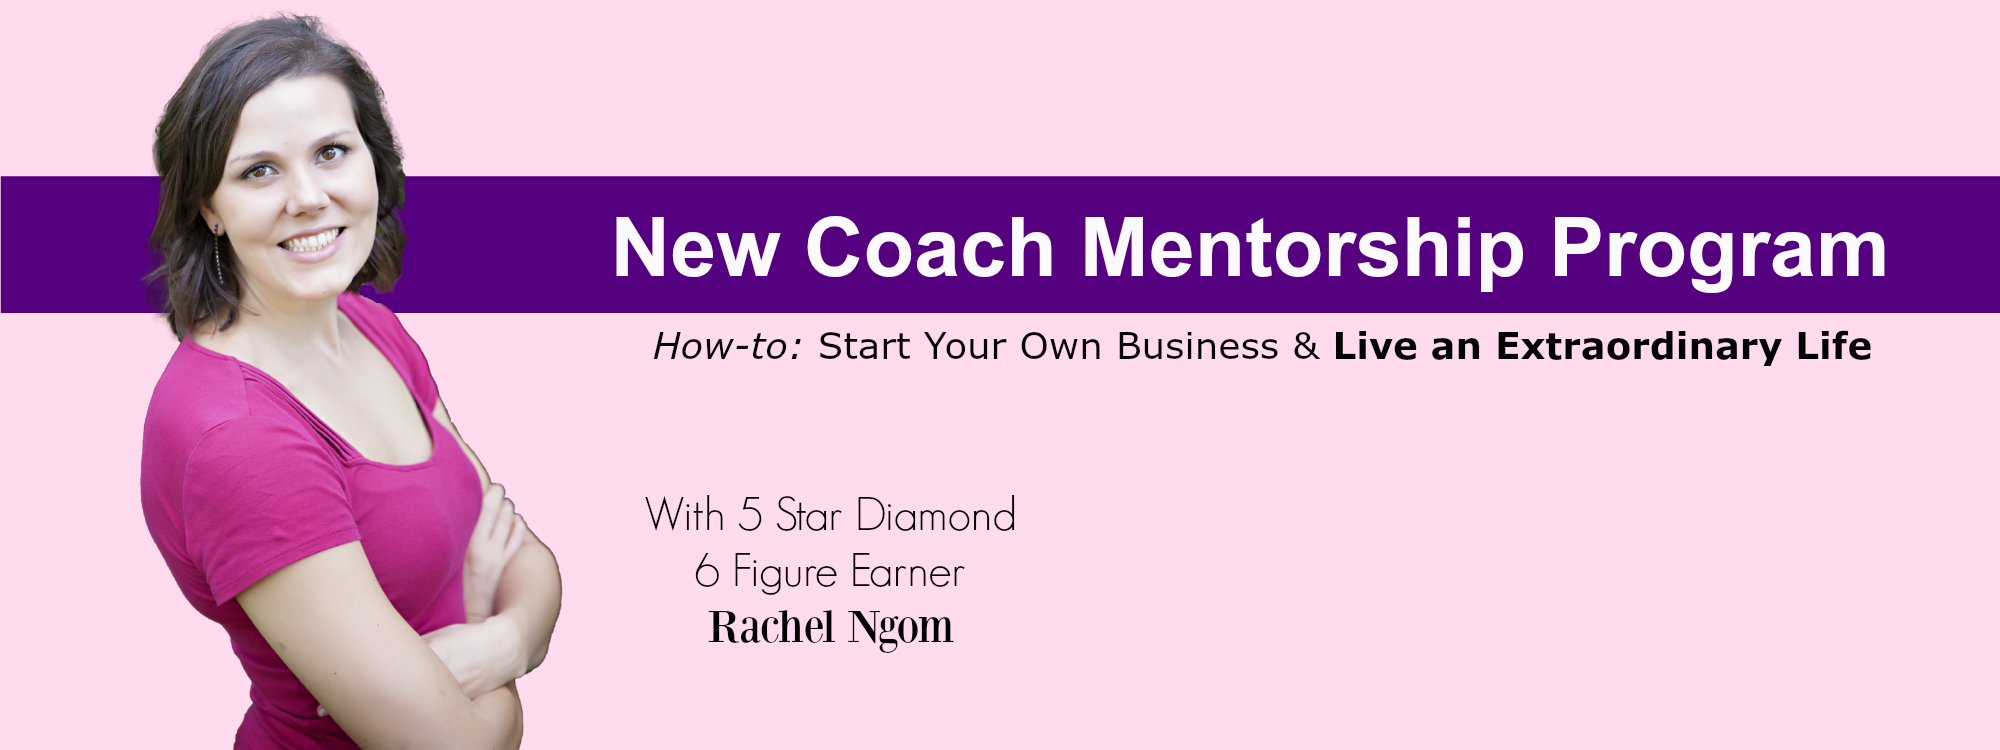 new coach mentorship header